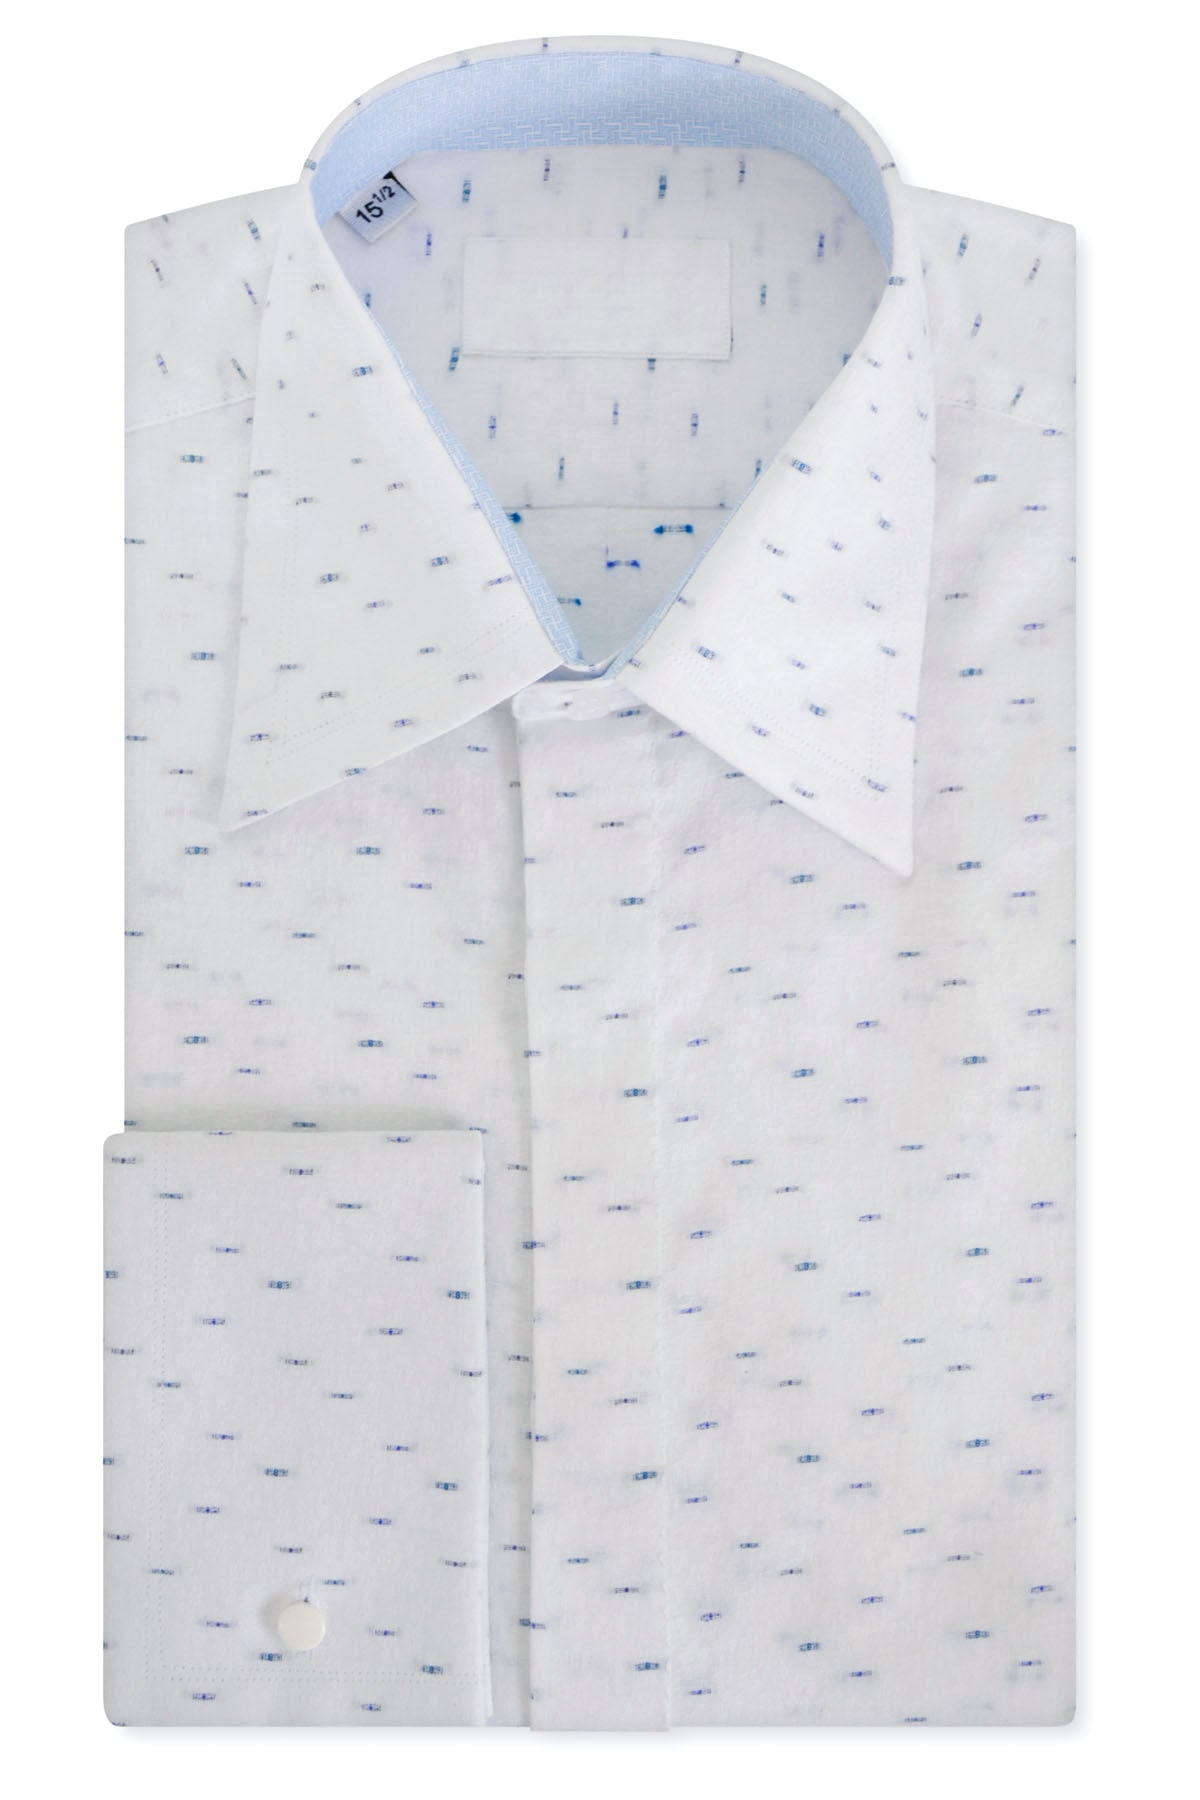 Blue Dash over White Floral Forward Point Collar Shirt with Matching Tie